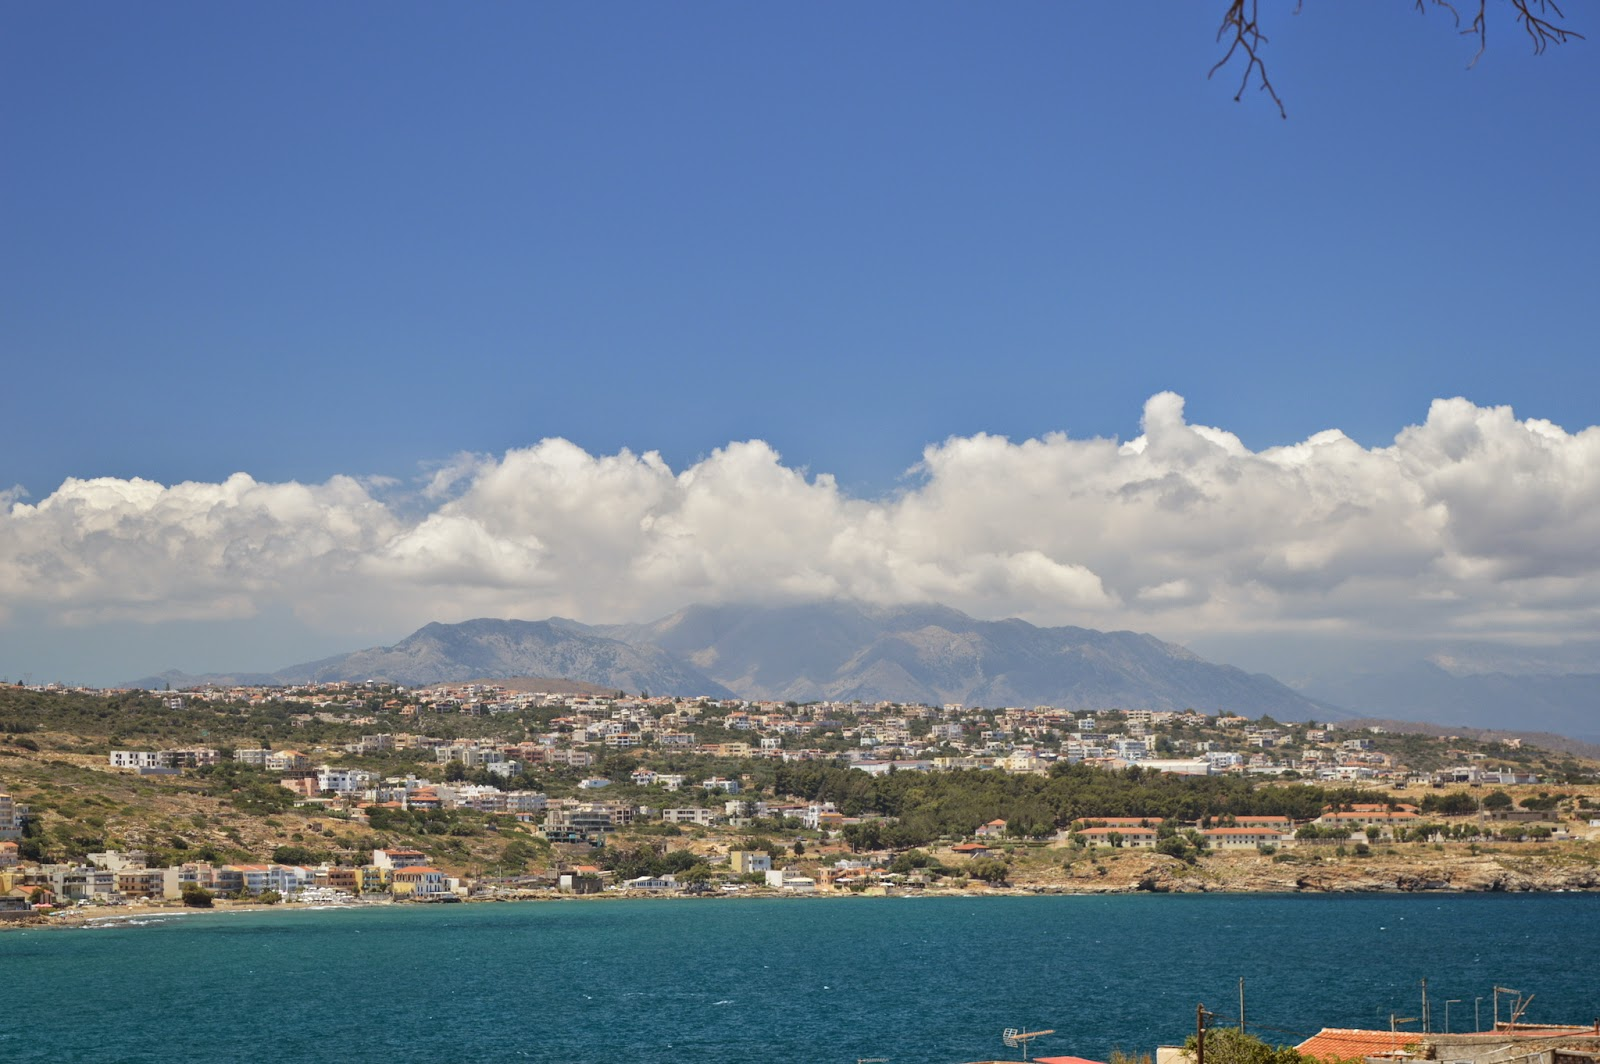 View of  white mountains from Fortezza castle in Rethimno, Crete, Greece.